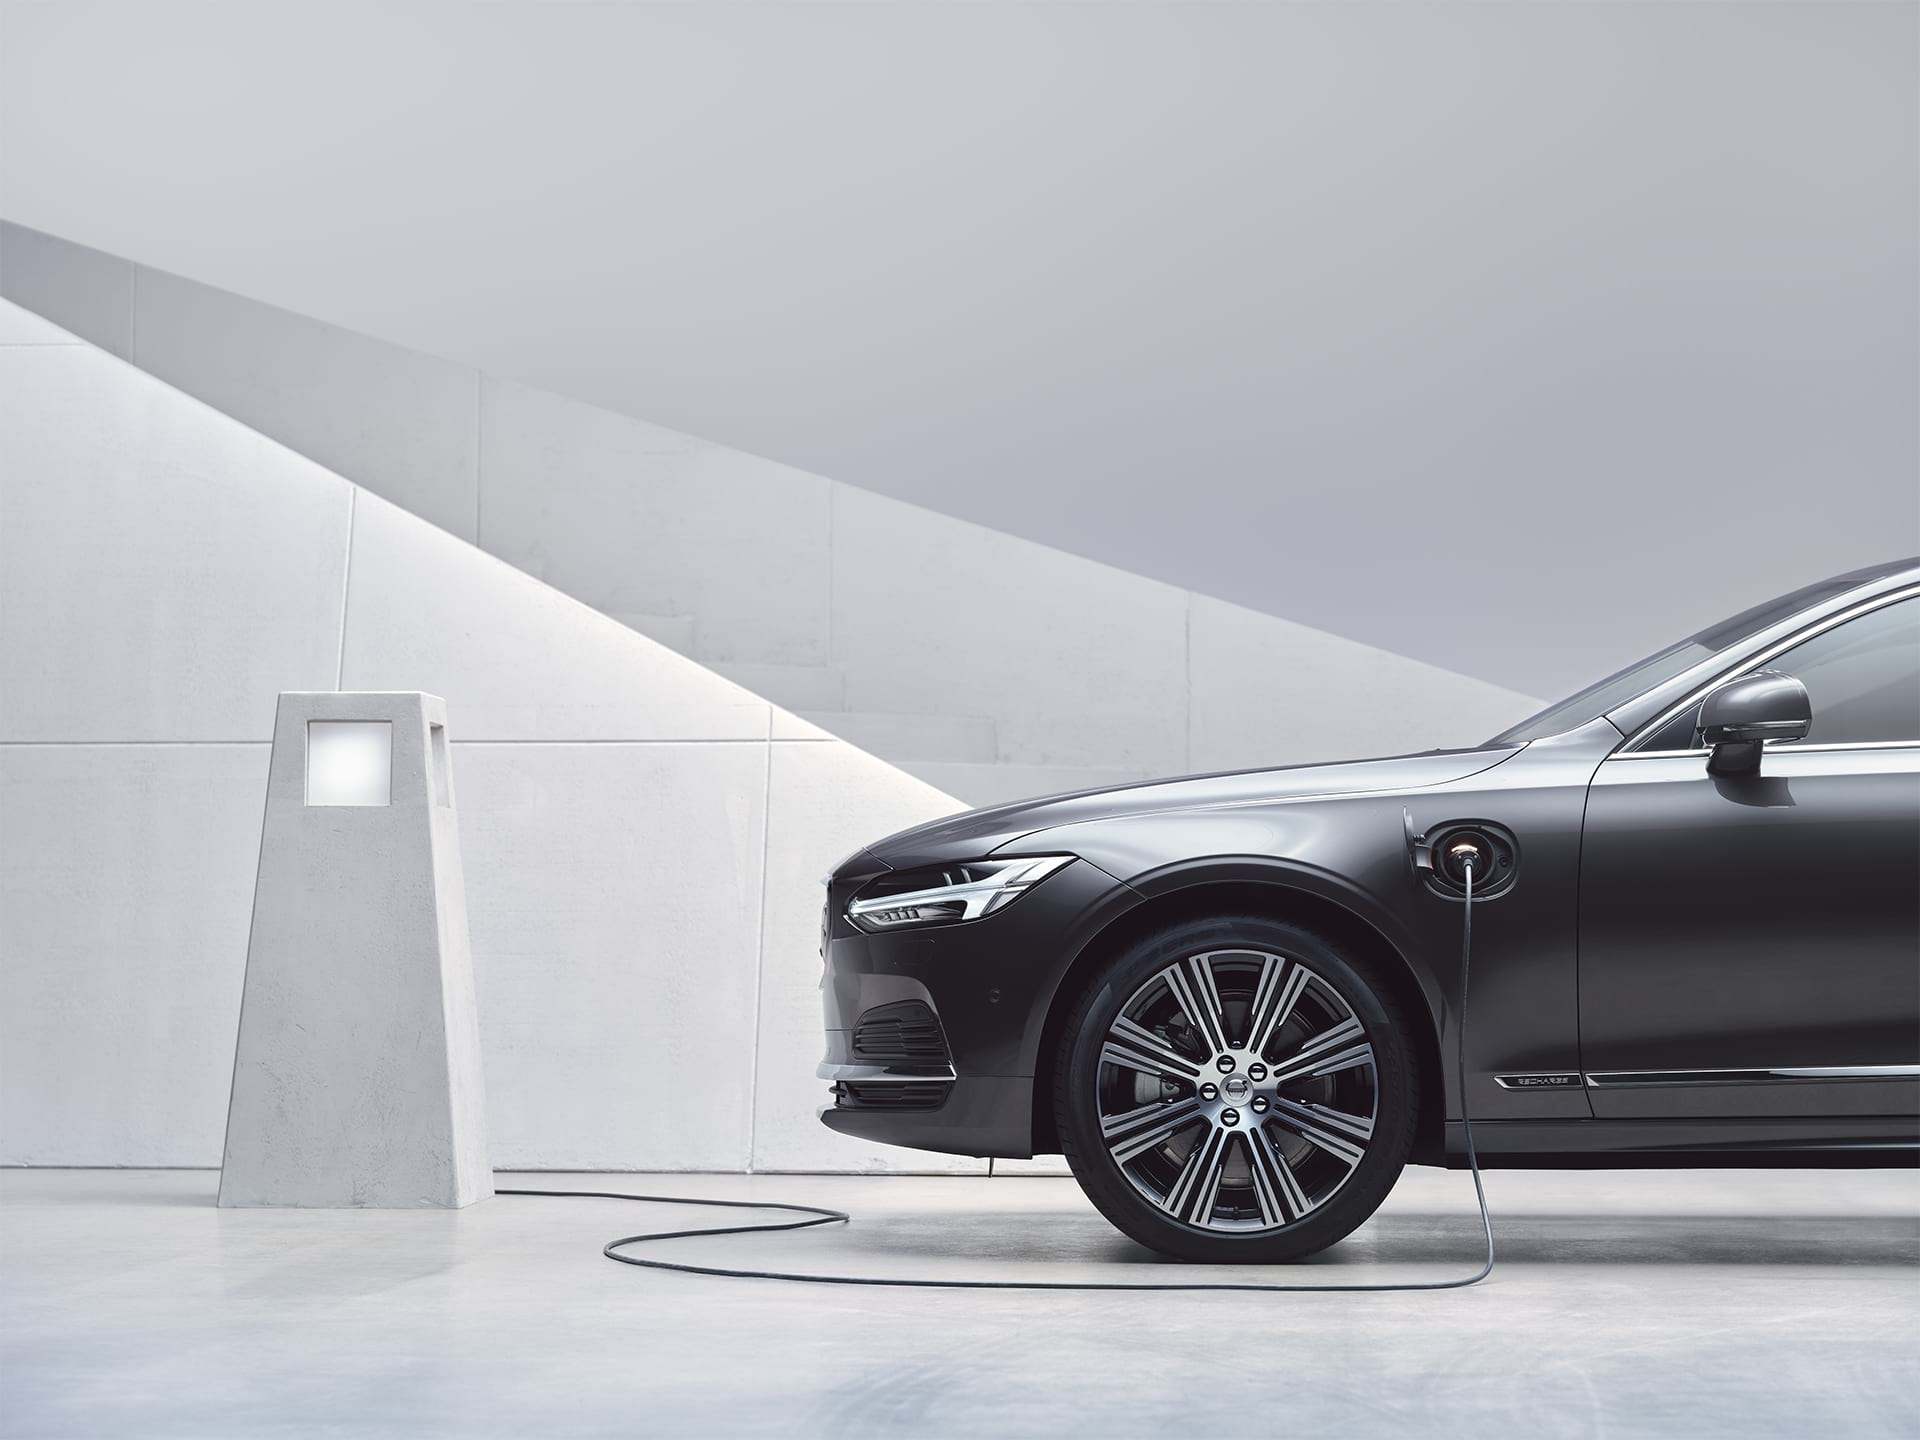 A Volvo S90 Recharge gets charged at a charging station.